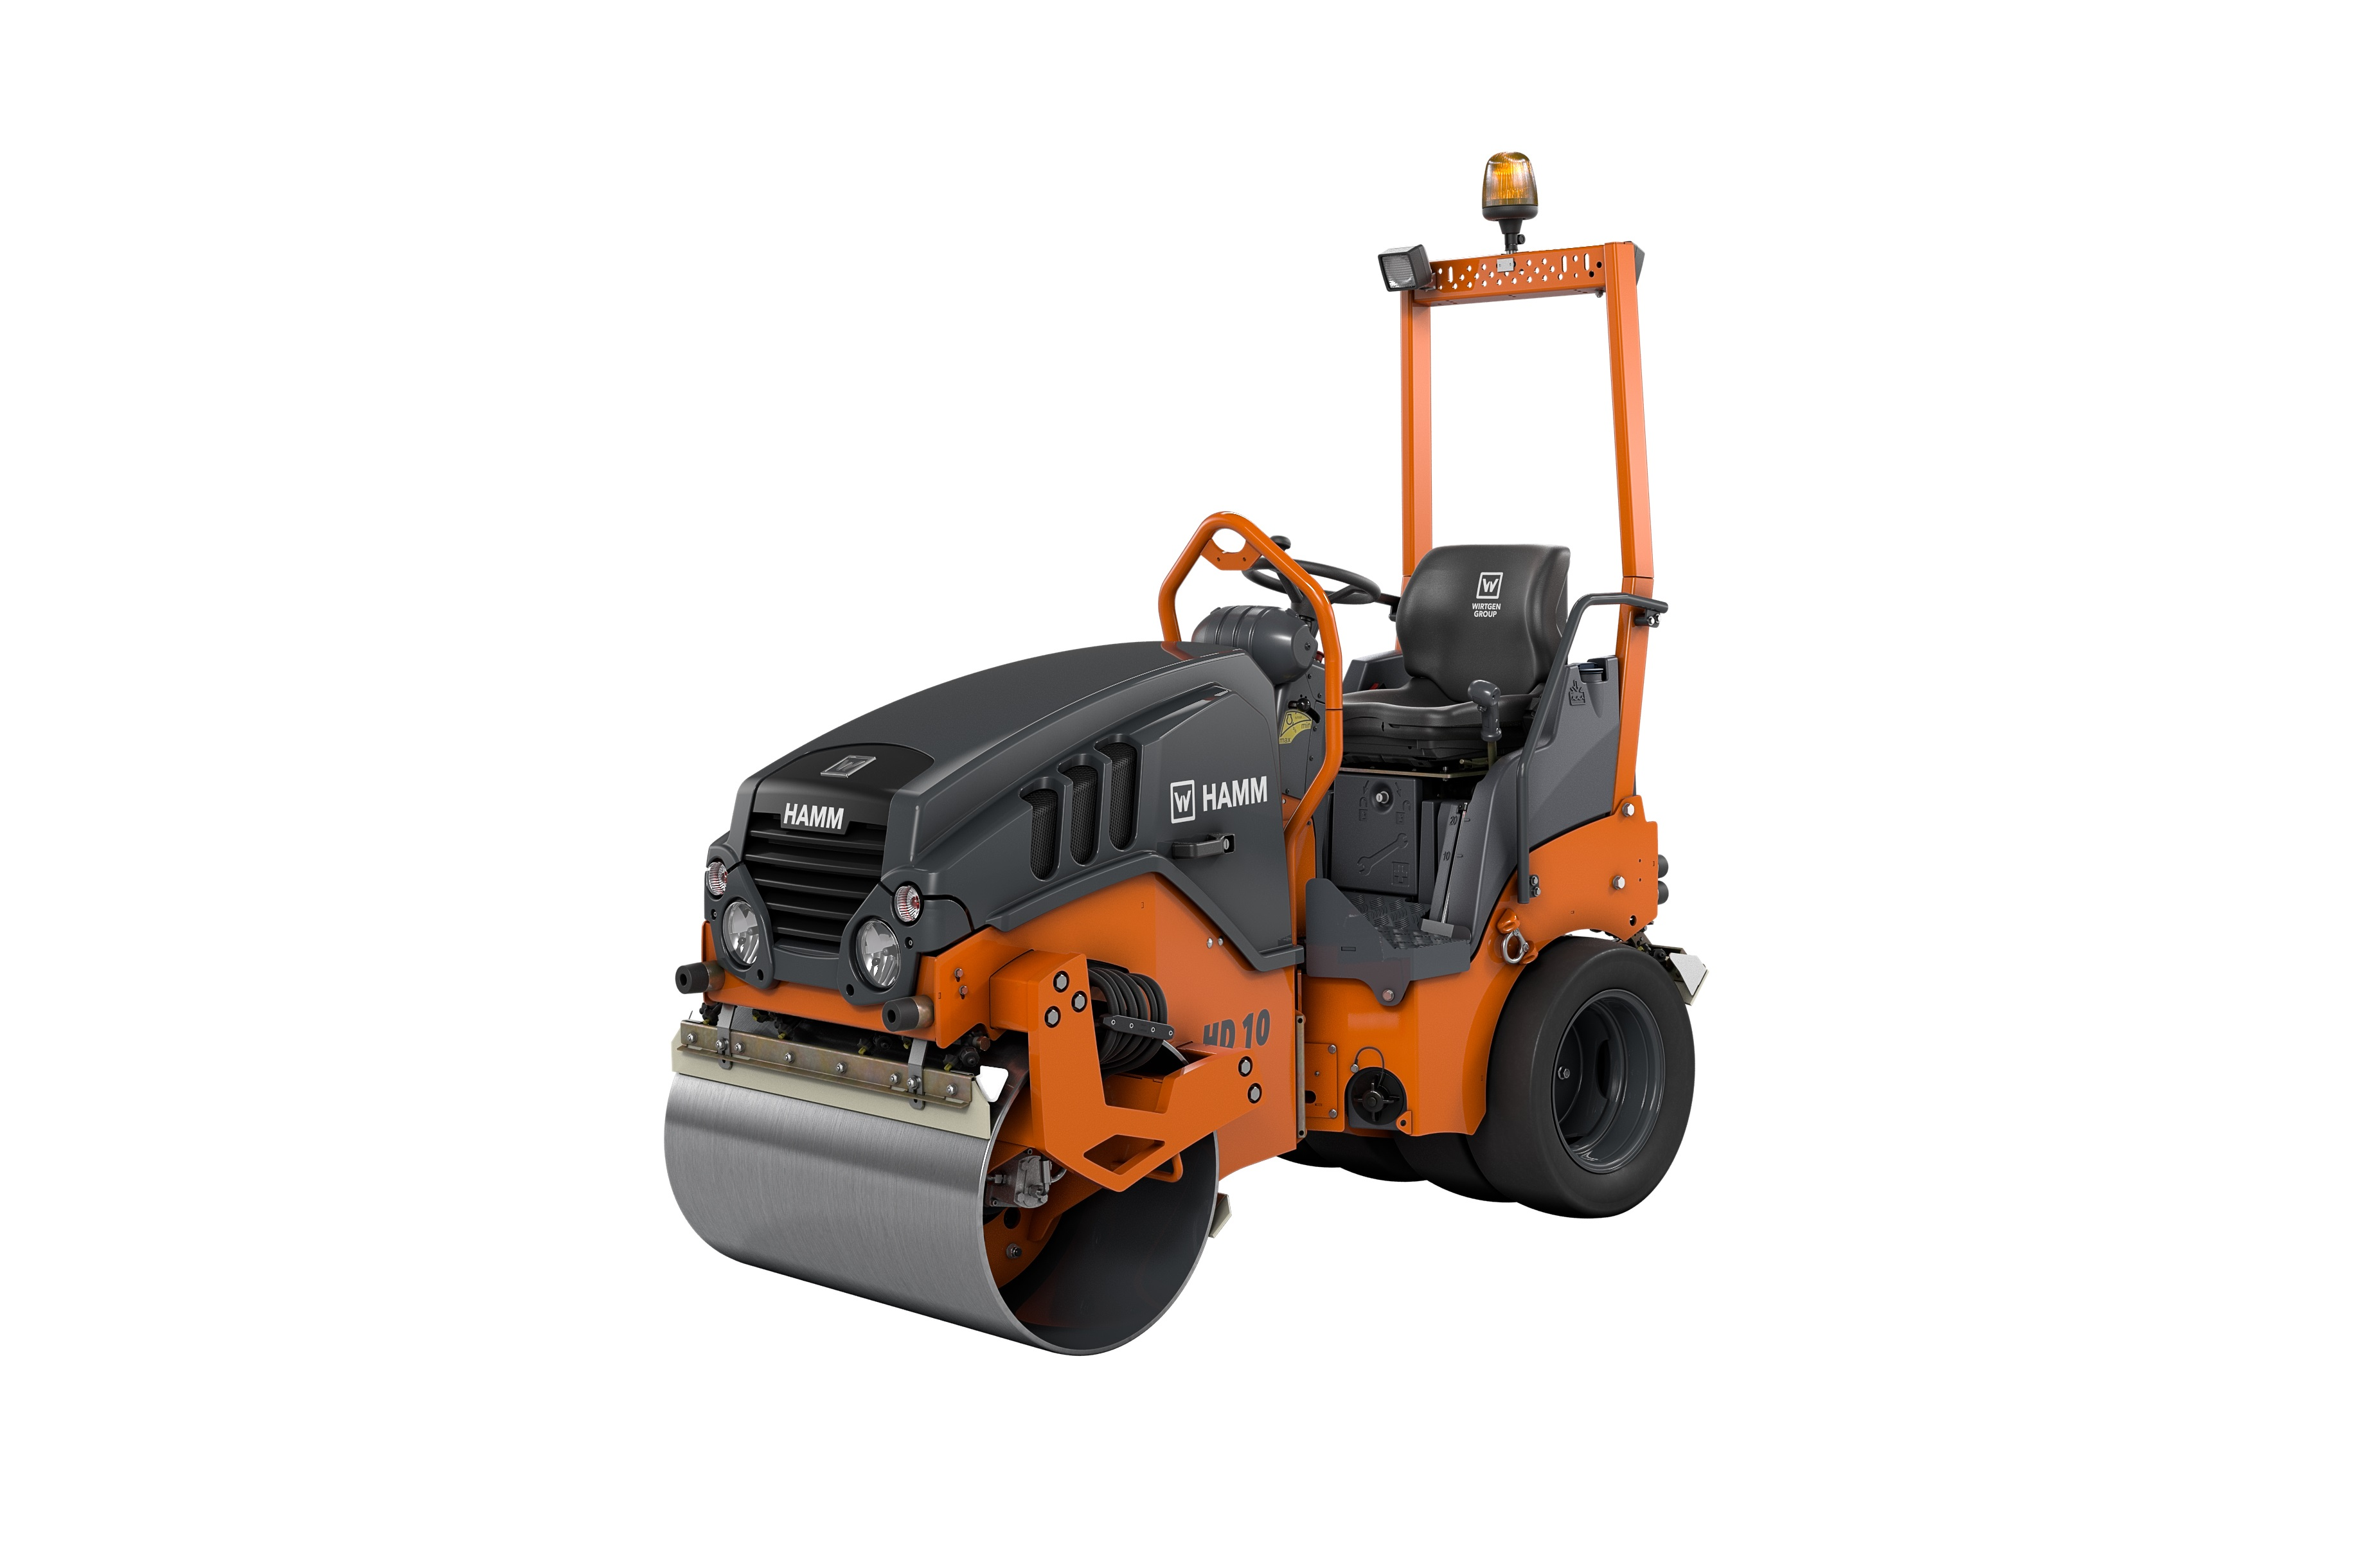 The new Hamm HD 10C VT compact combi roller with Clear Side can compact all the way up to walls and other high boundaries.